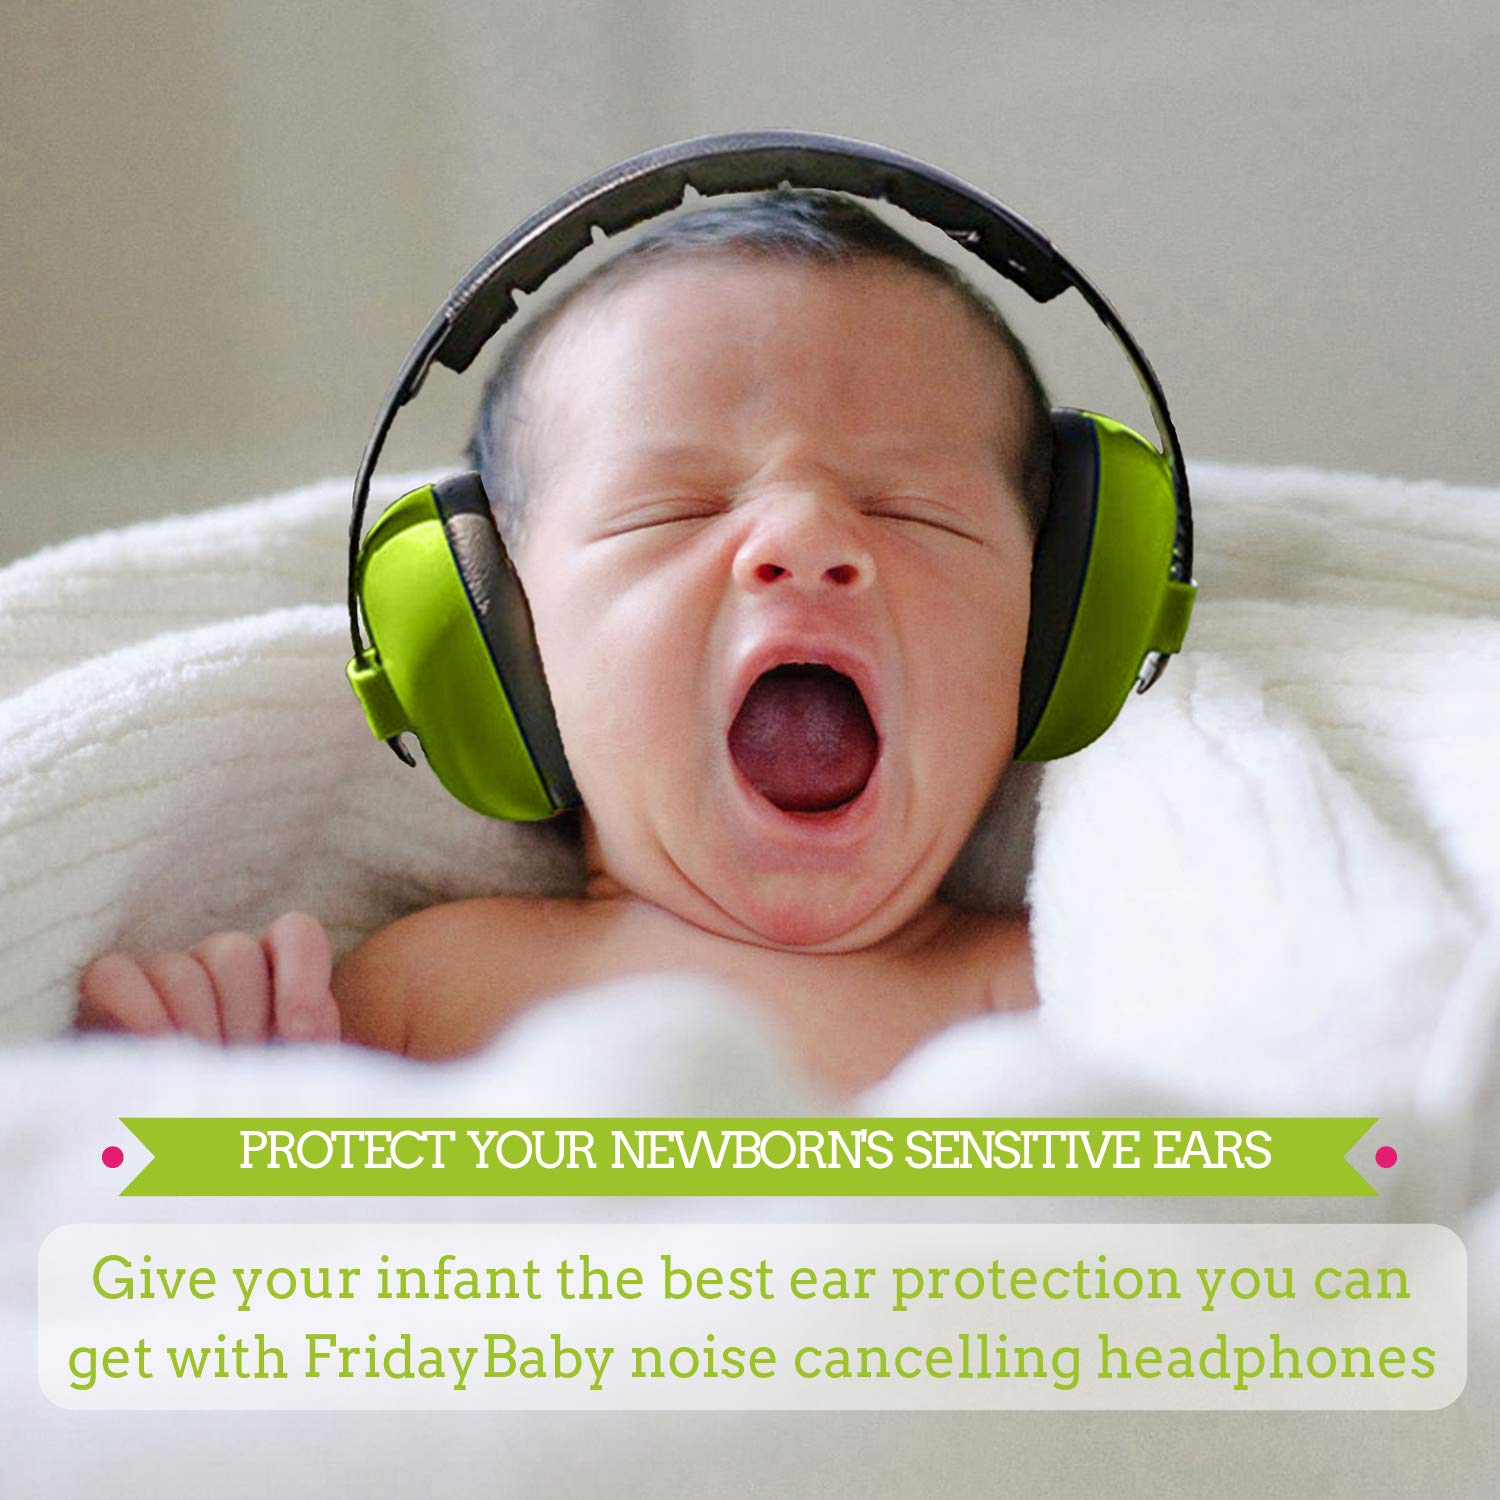 Baby Ear Protection - Comfortable and Adjustable Premium Noise Cancelling Headphones for Babies, Infants, Newborns (0-2+ Years) | Best Baby Headphones Noise Reduction for Concerts, Fireworks & Travels by Friday Baby (Image #4)